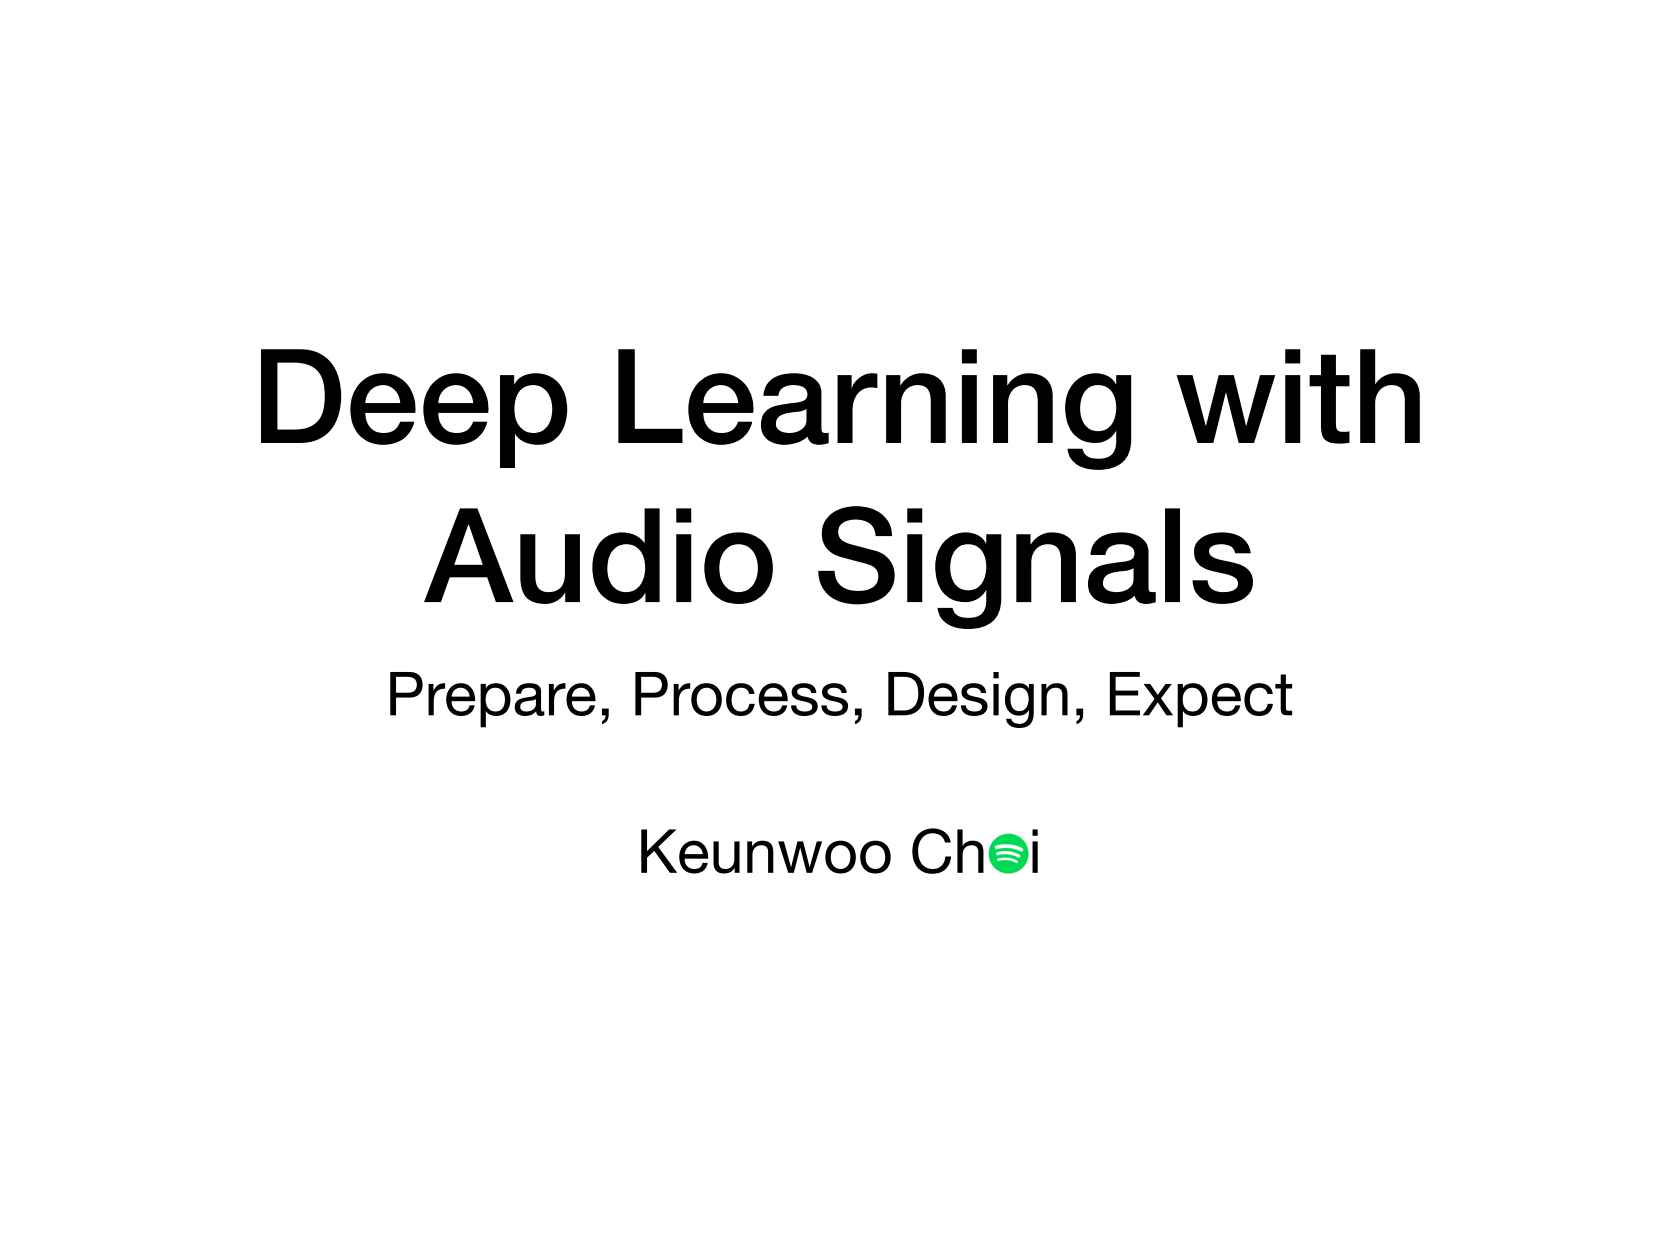 Deep Learning with Audio Signals: Prepare, Process, Design